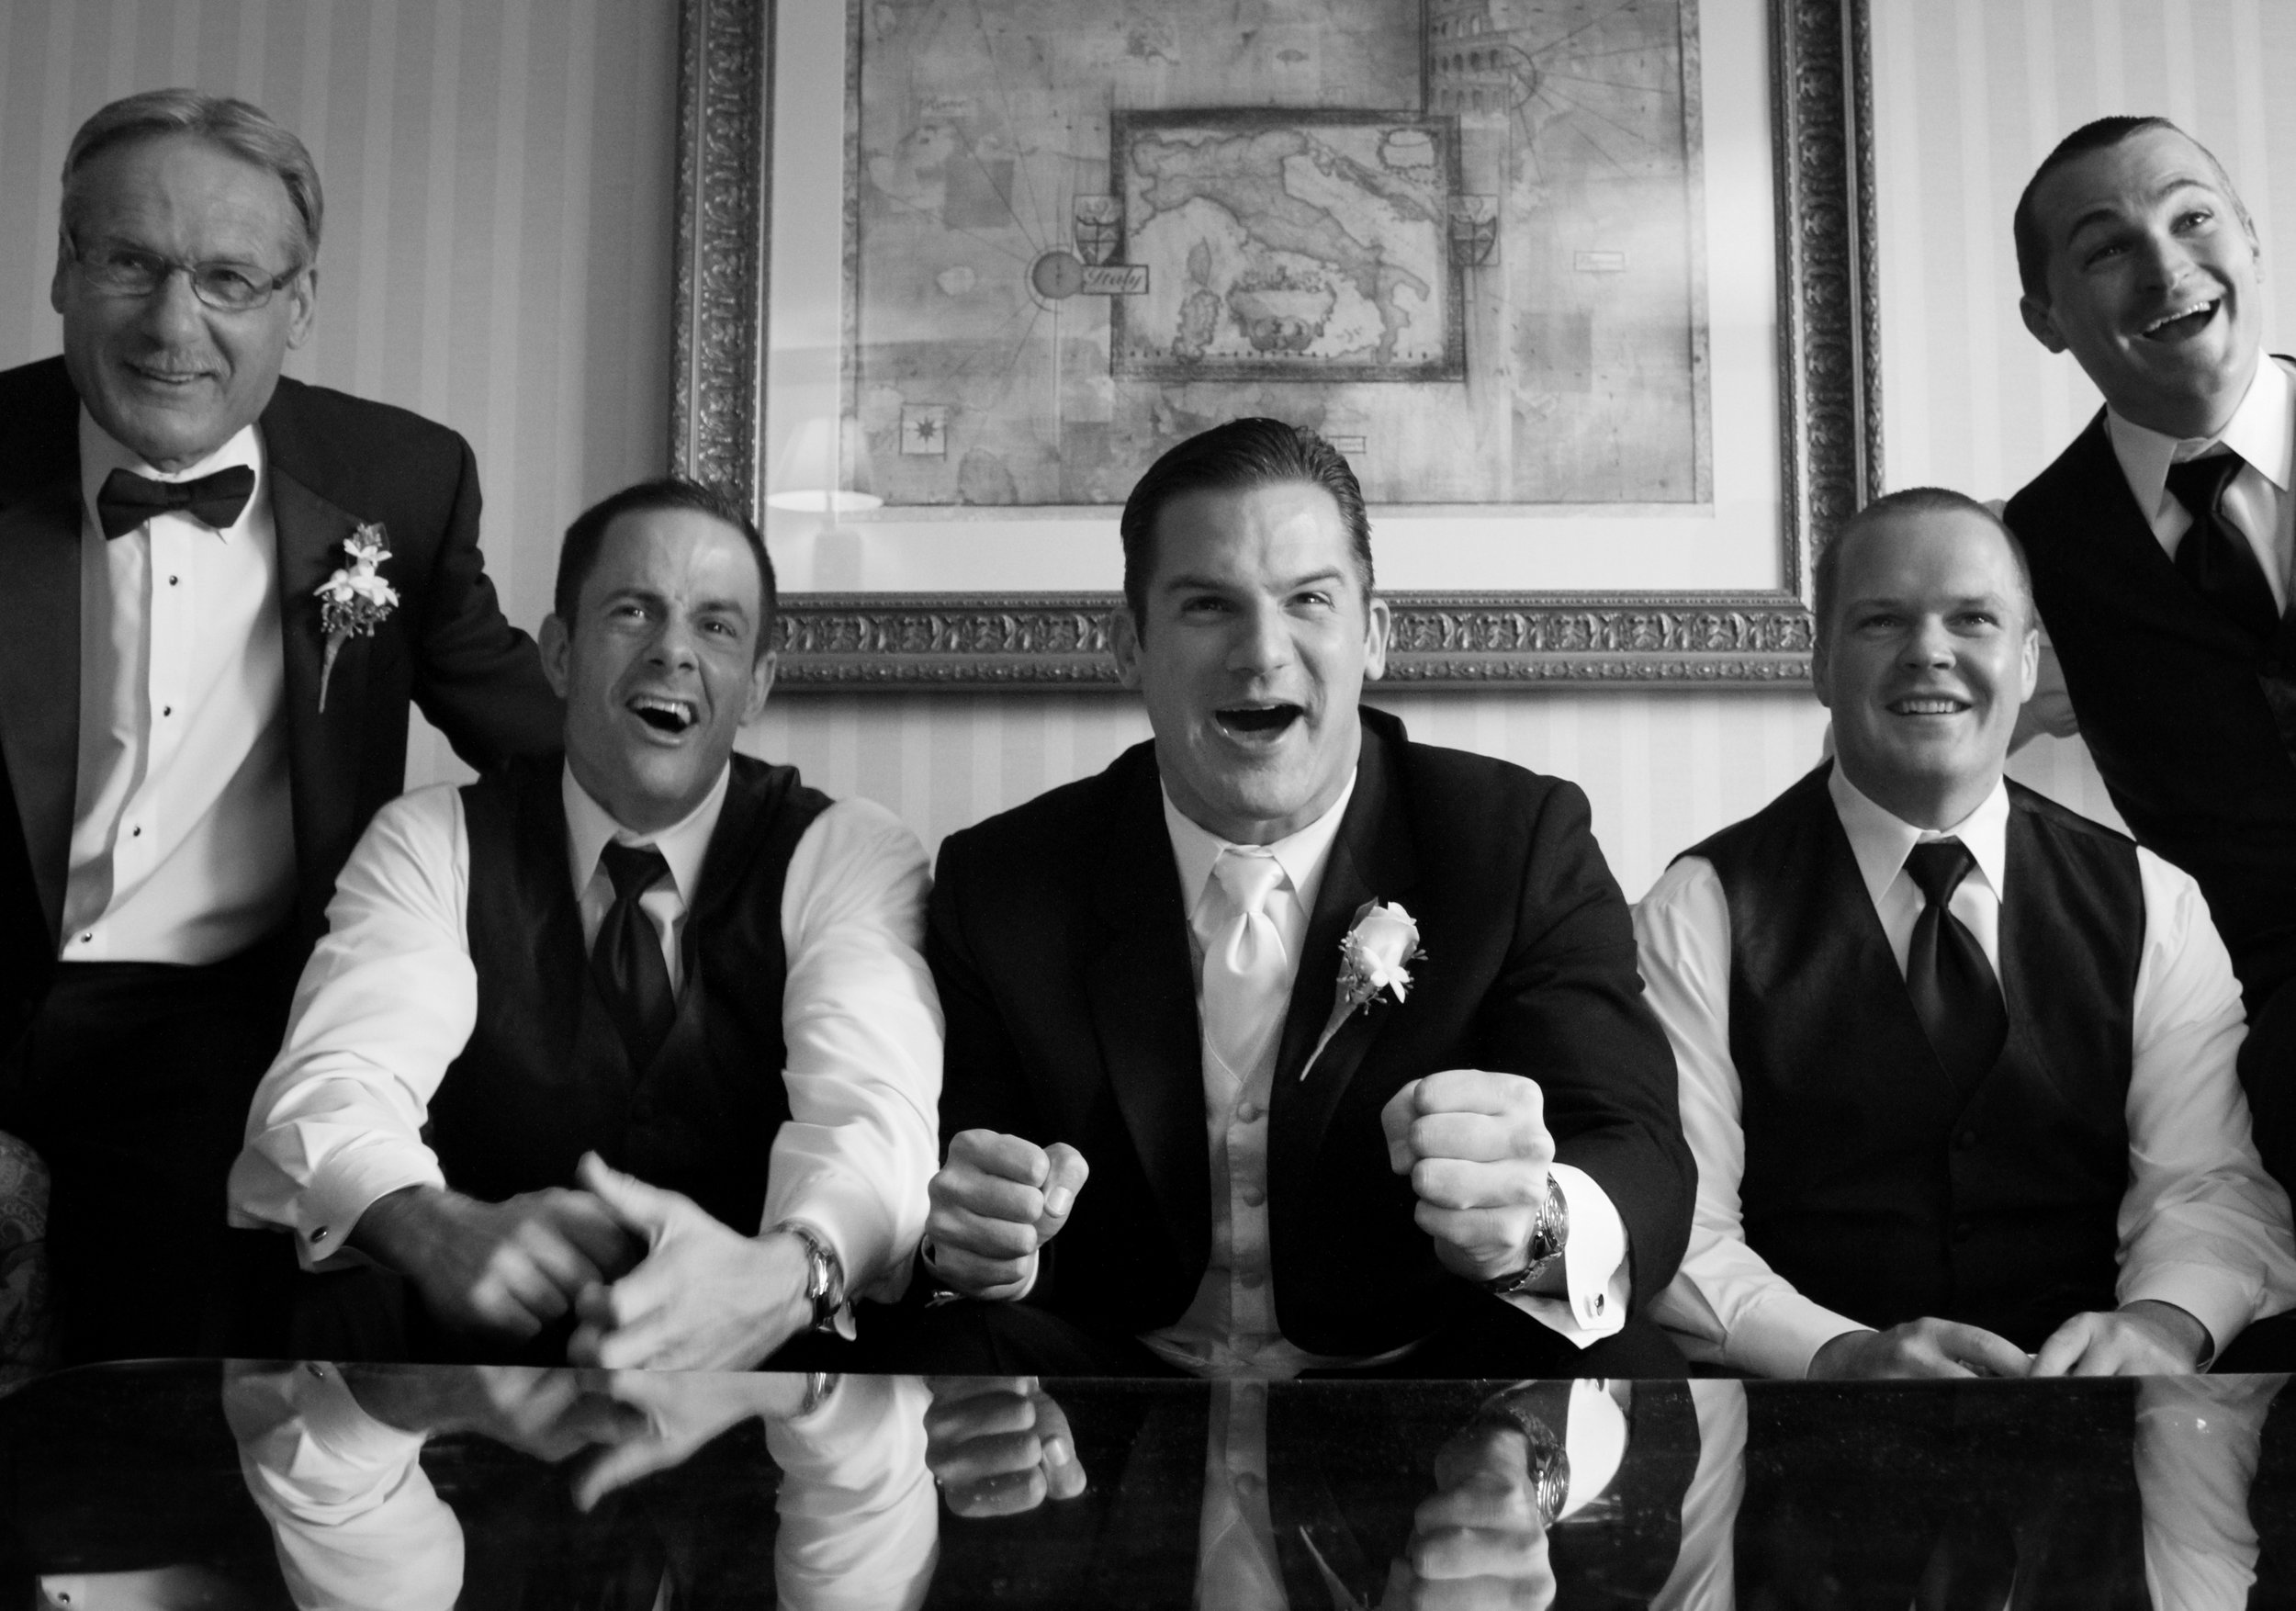 wedding-groom-groomsman-fun-humour-candid-sports-black-and-white-image